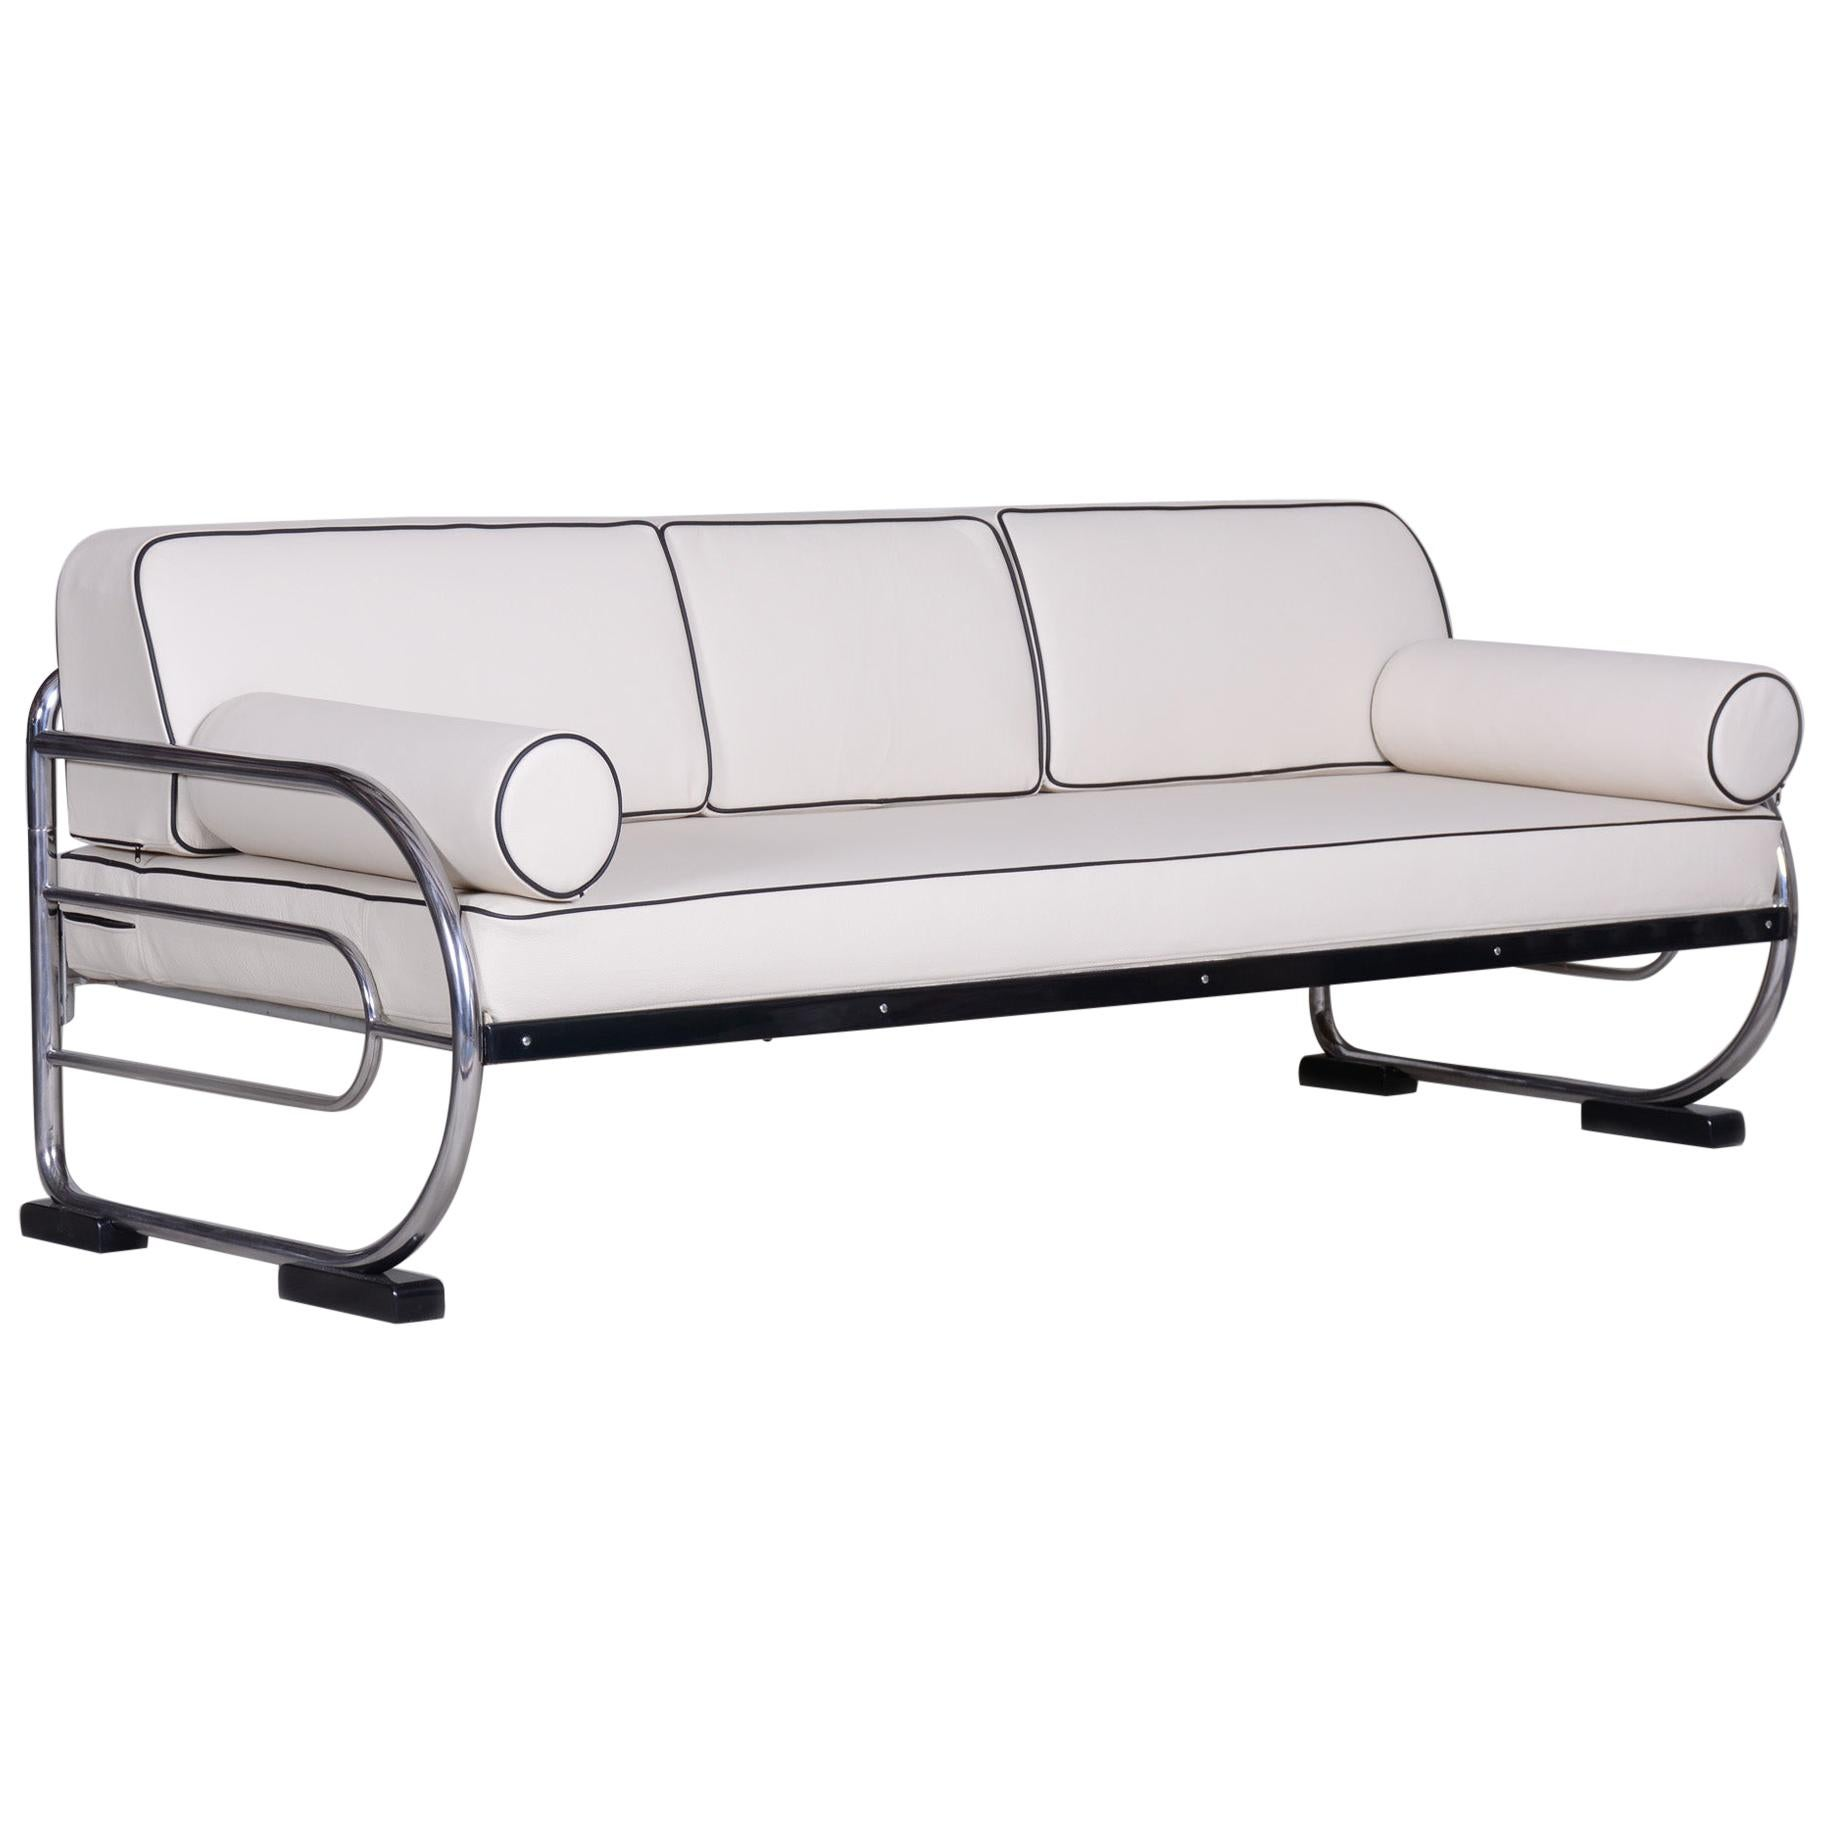 Bauhaus White Tubular Chrome Sofa by Robert Slezák, Design by Thonet, 1930s